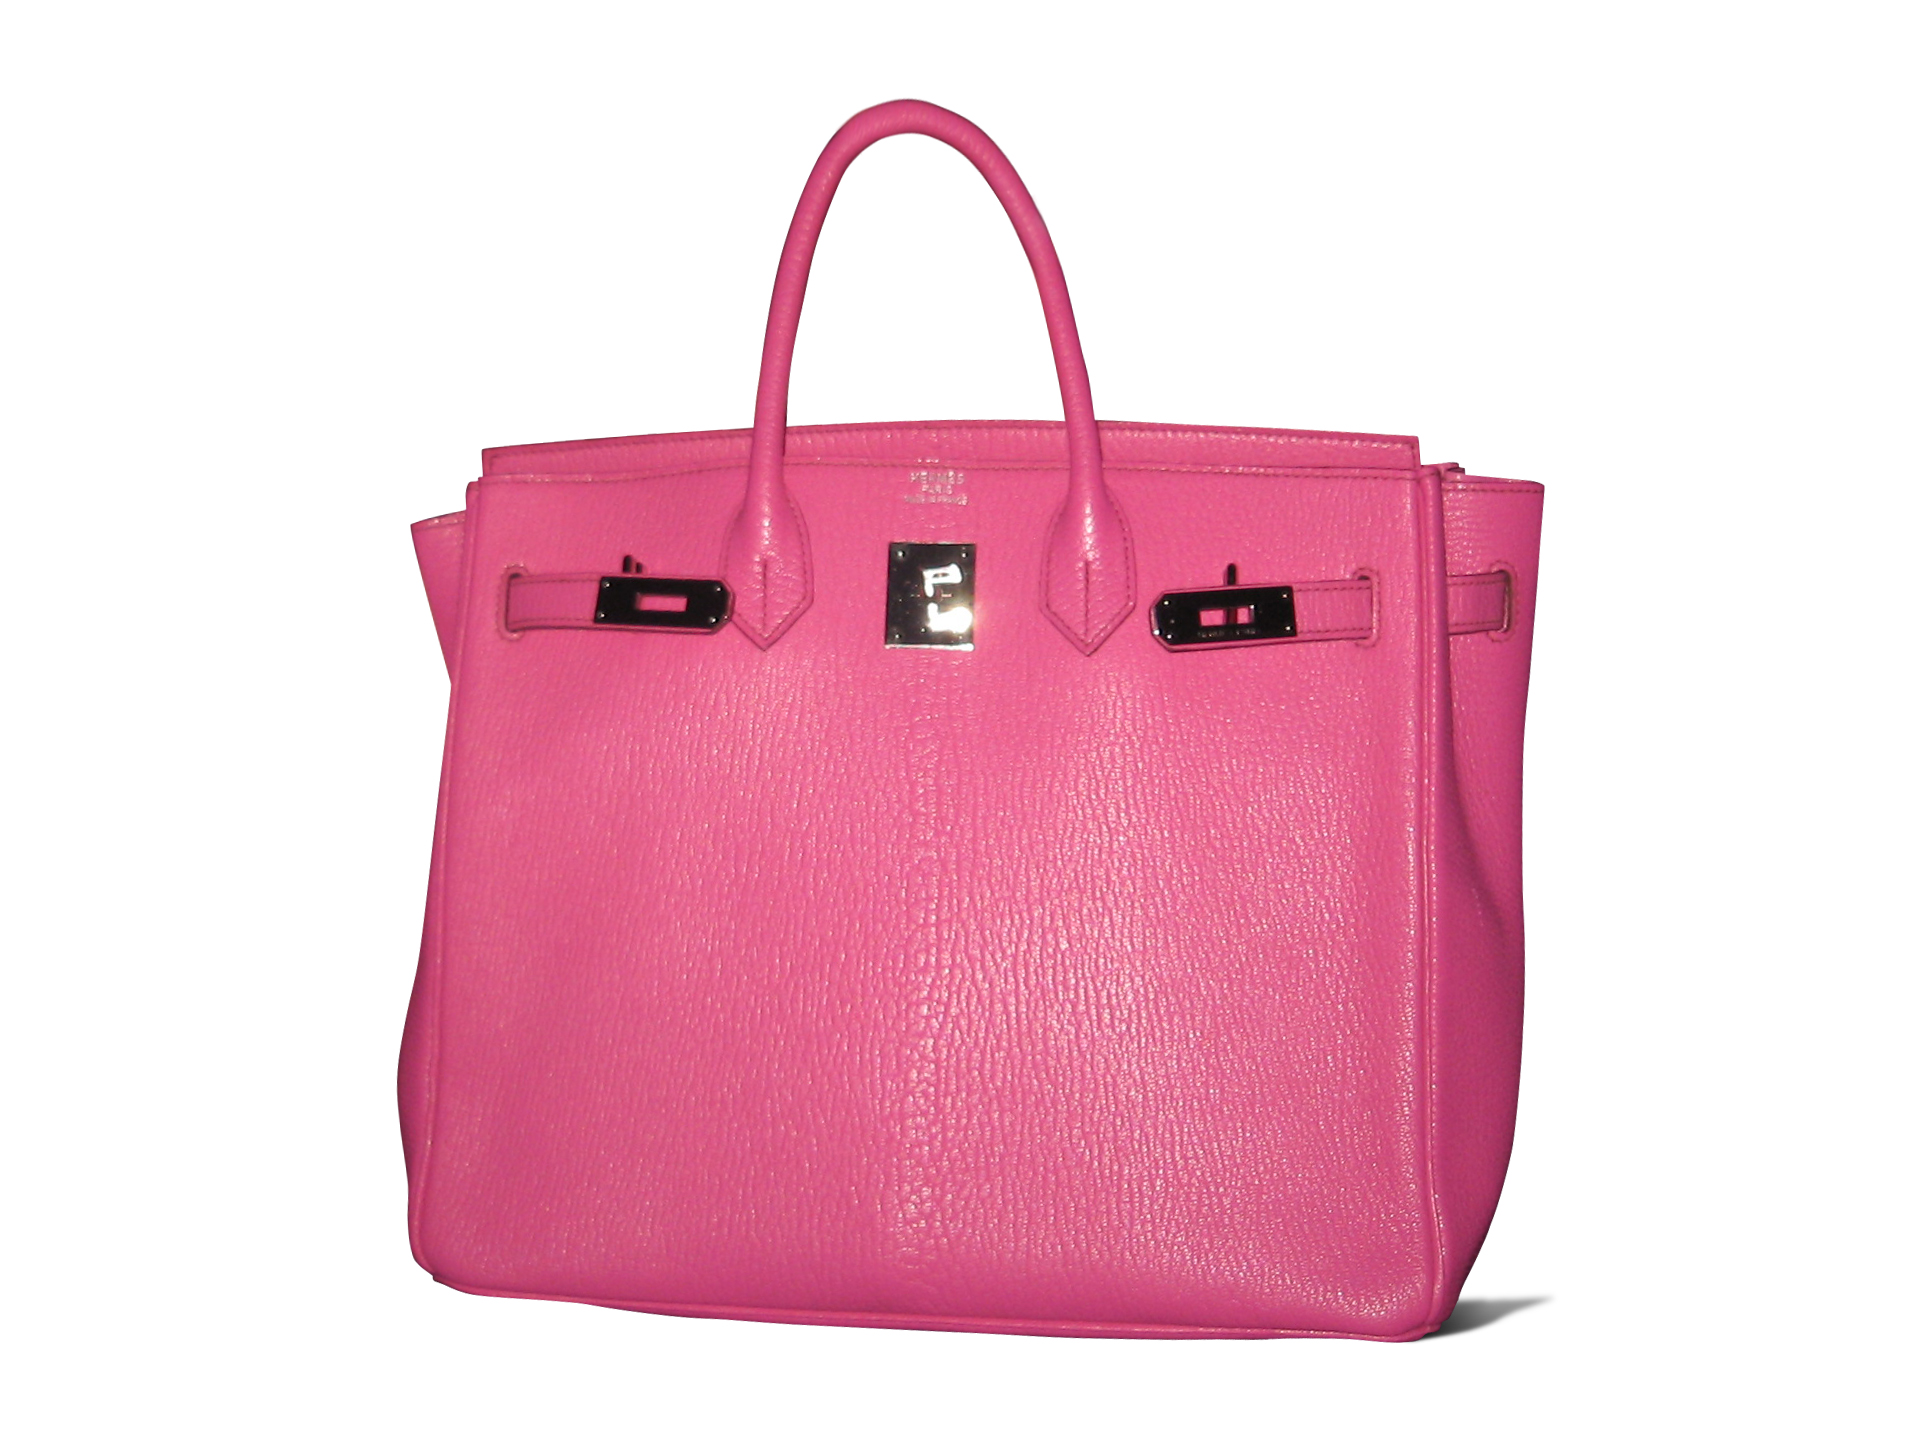 f257d347843 Birkin bag - Wikipedia